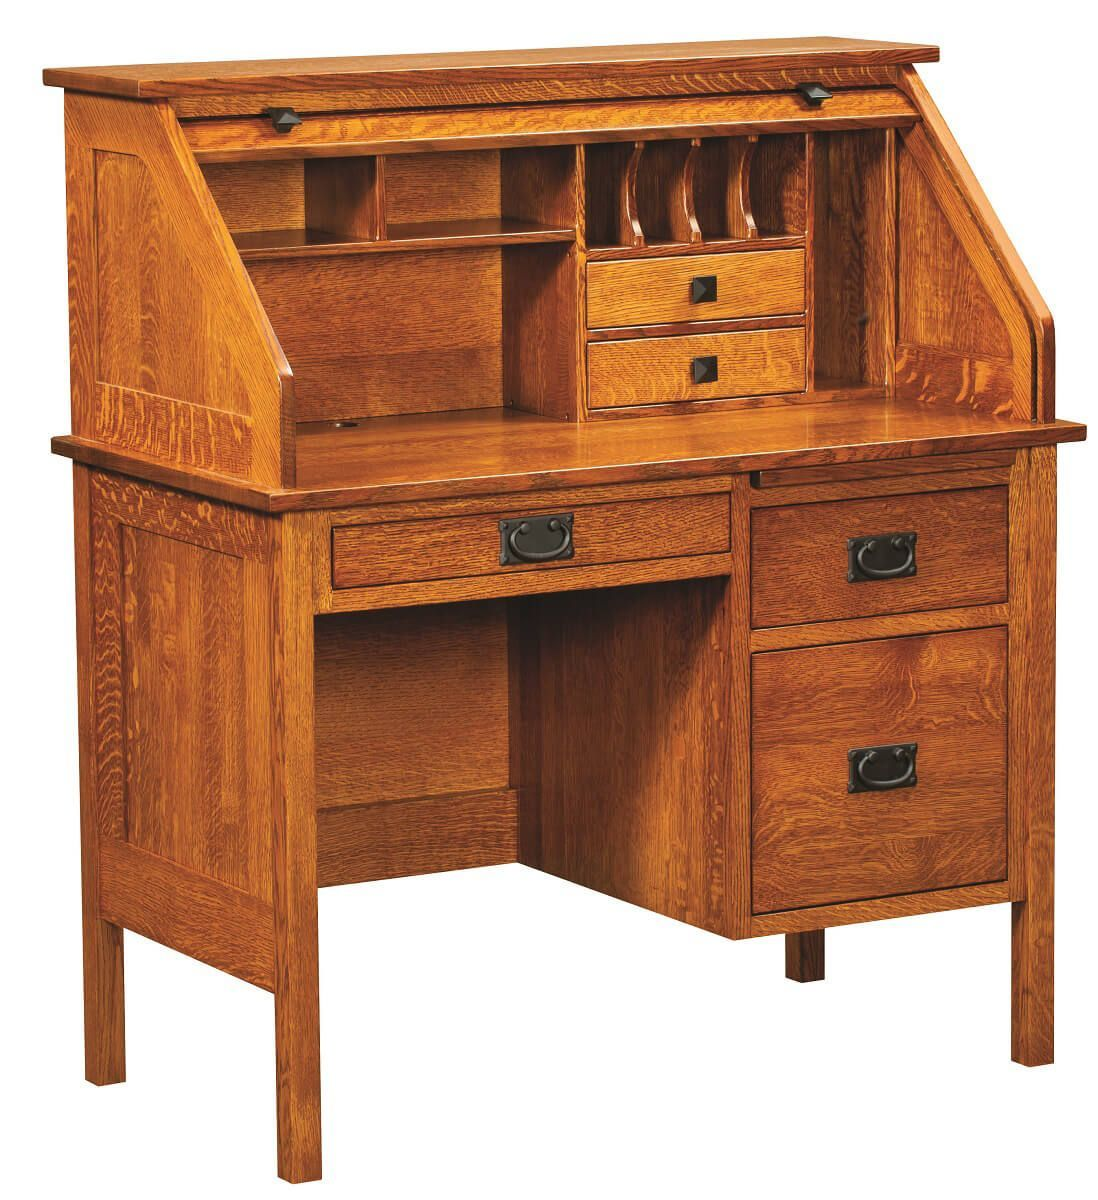 Esto Single Pedestal Rolltop Desk Roll Top Desk Small Roll Top Desk Traditional Desk